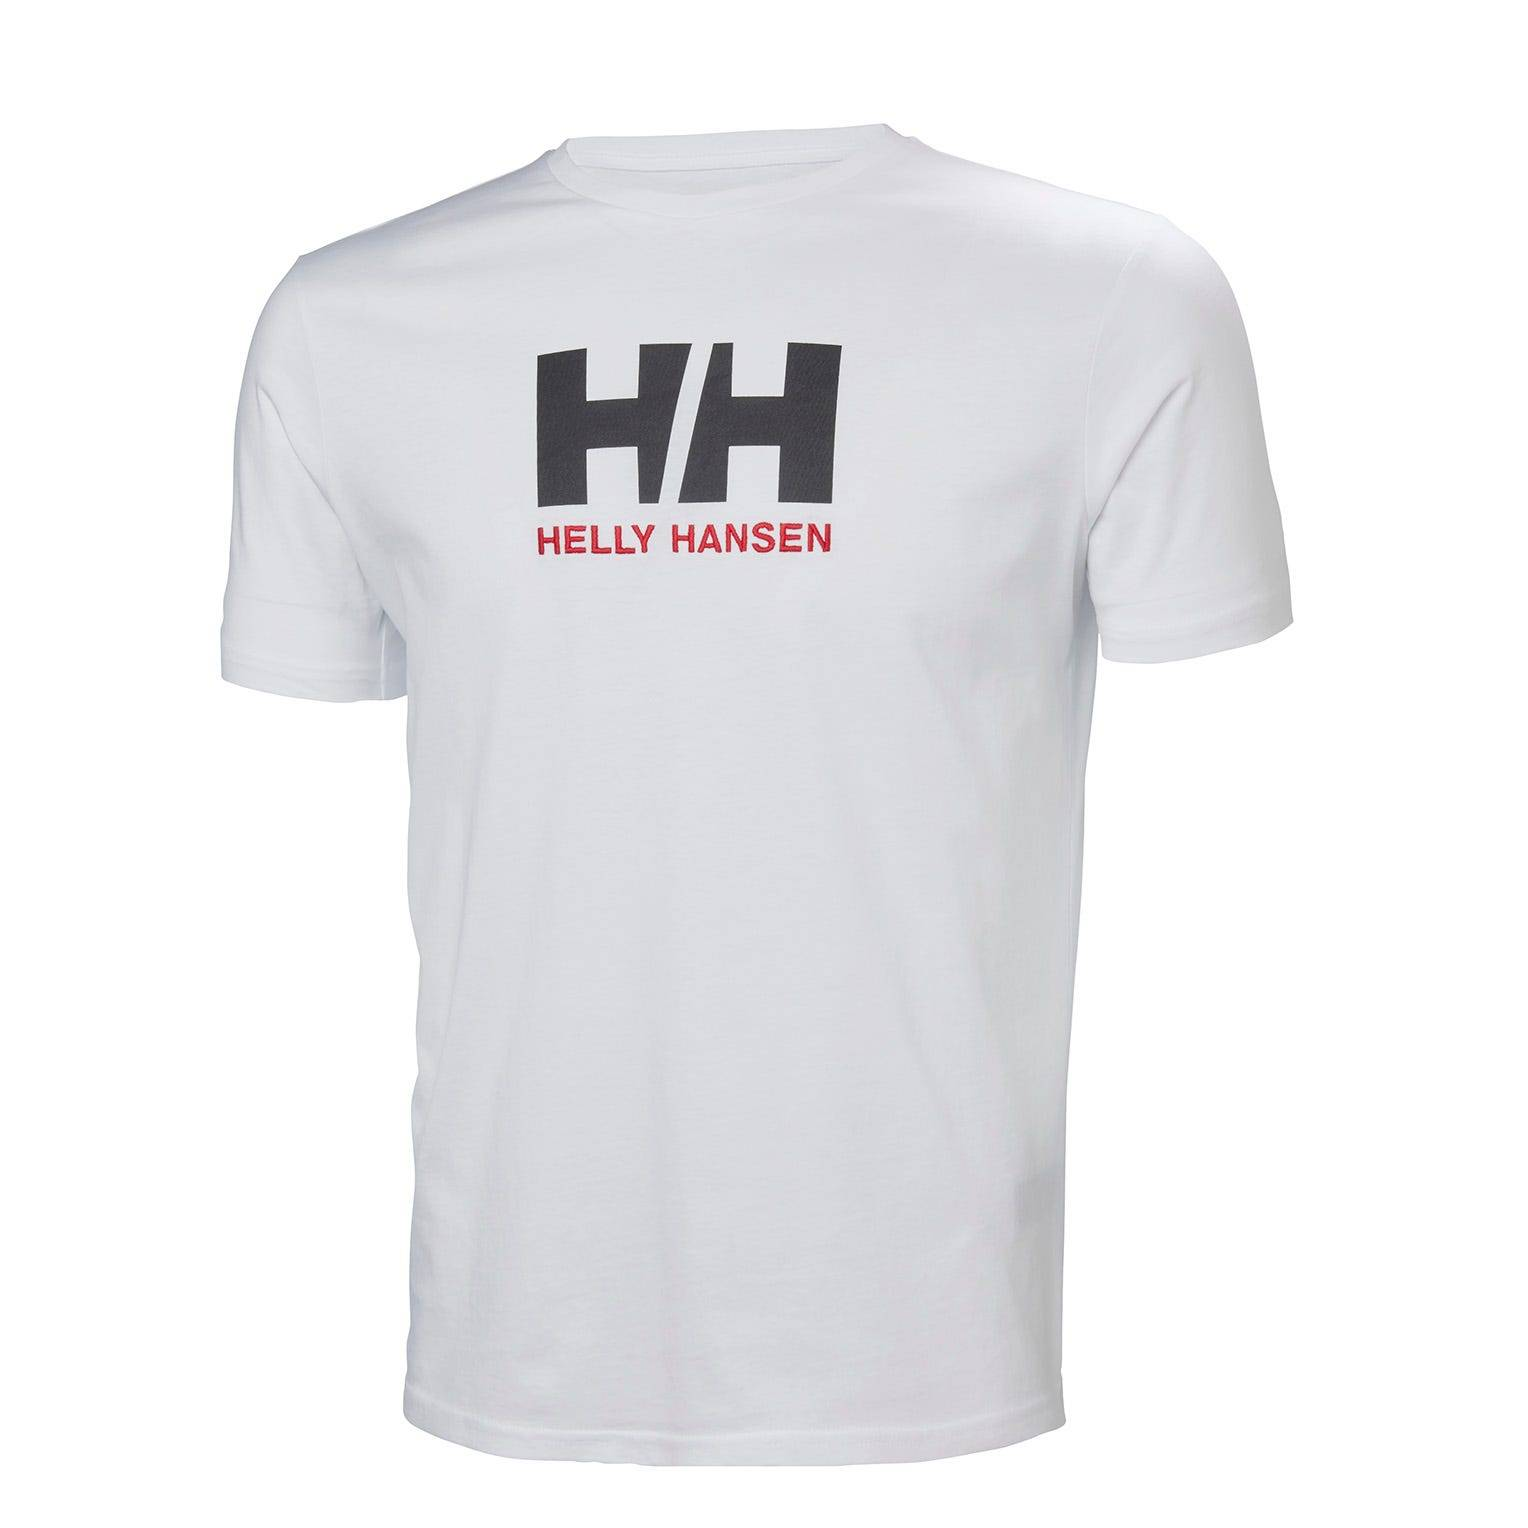 Helly Hansen Mens Logo Tshirt White L